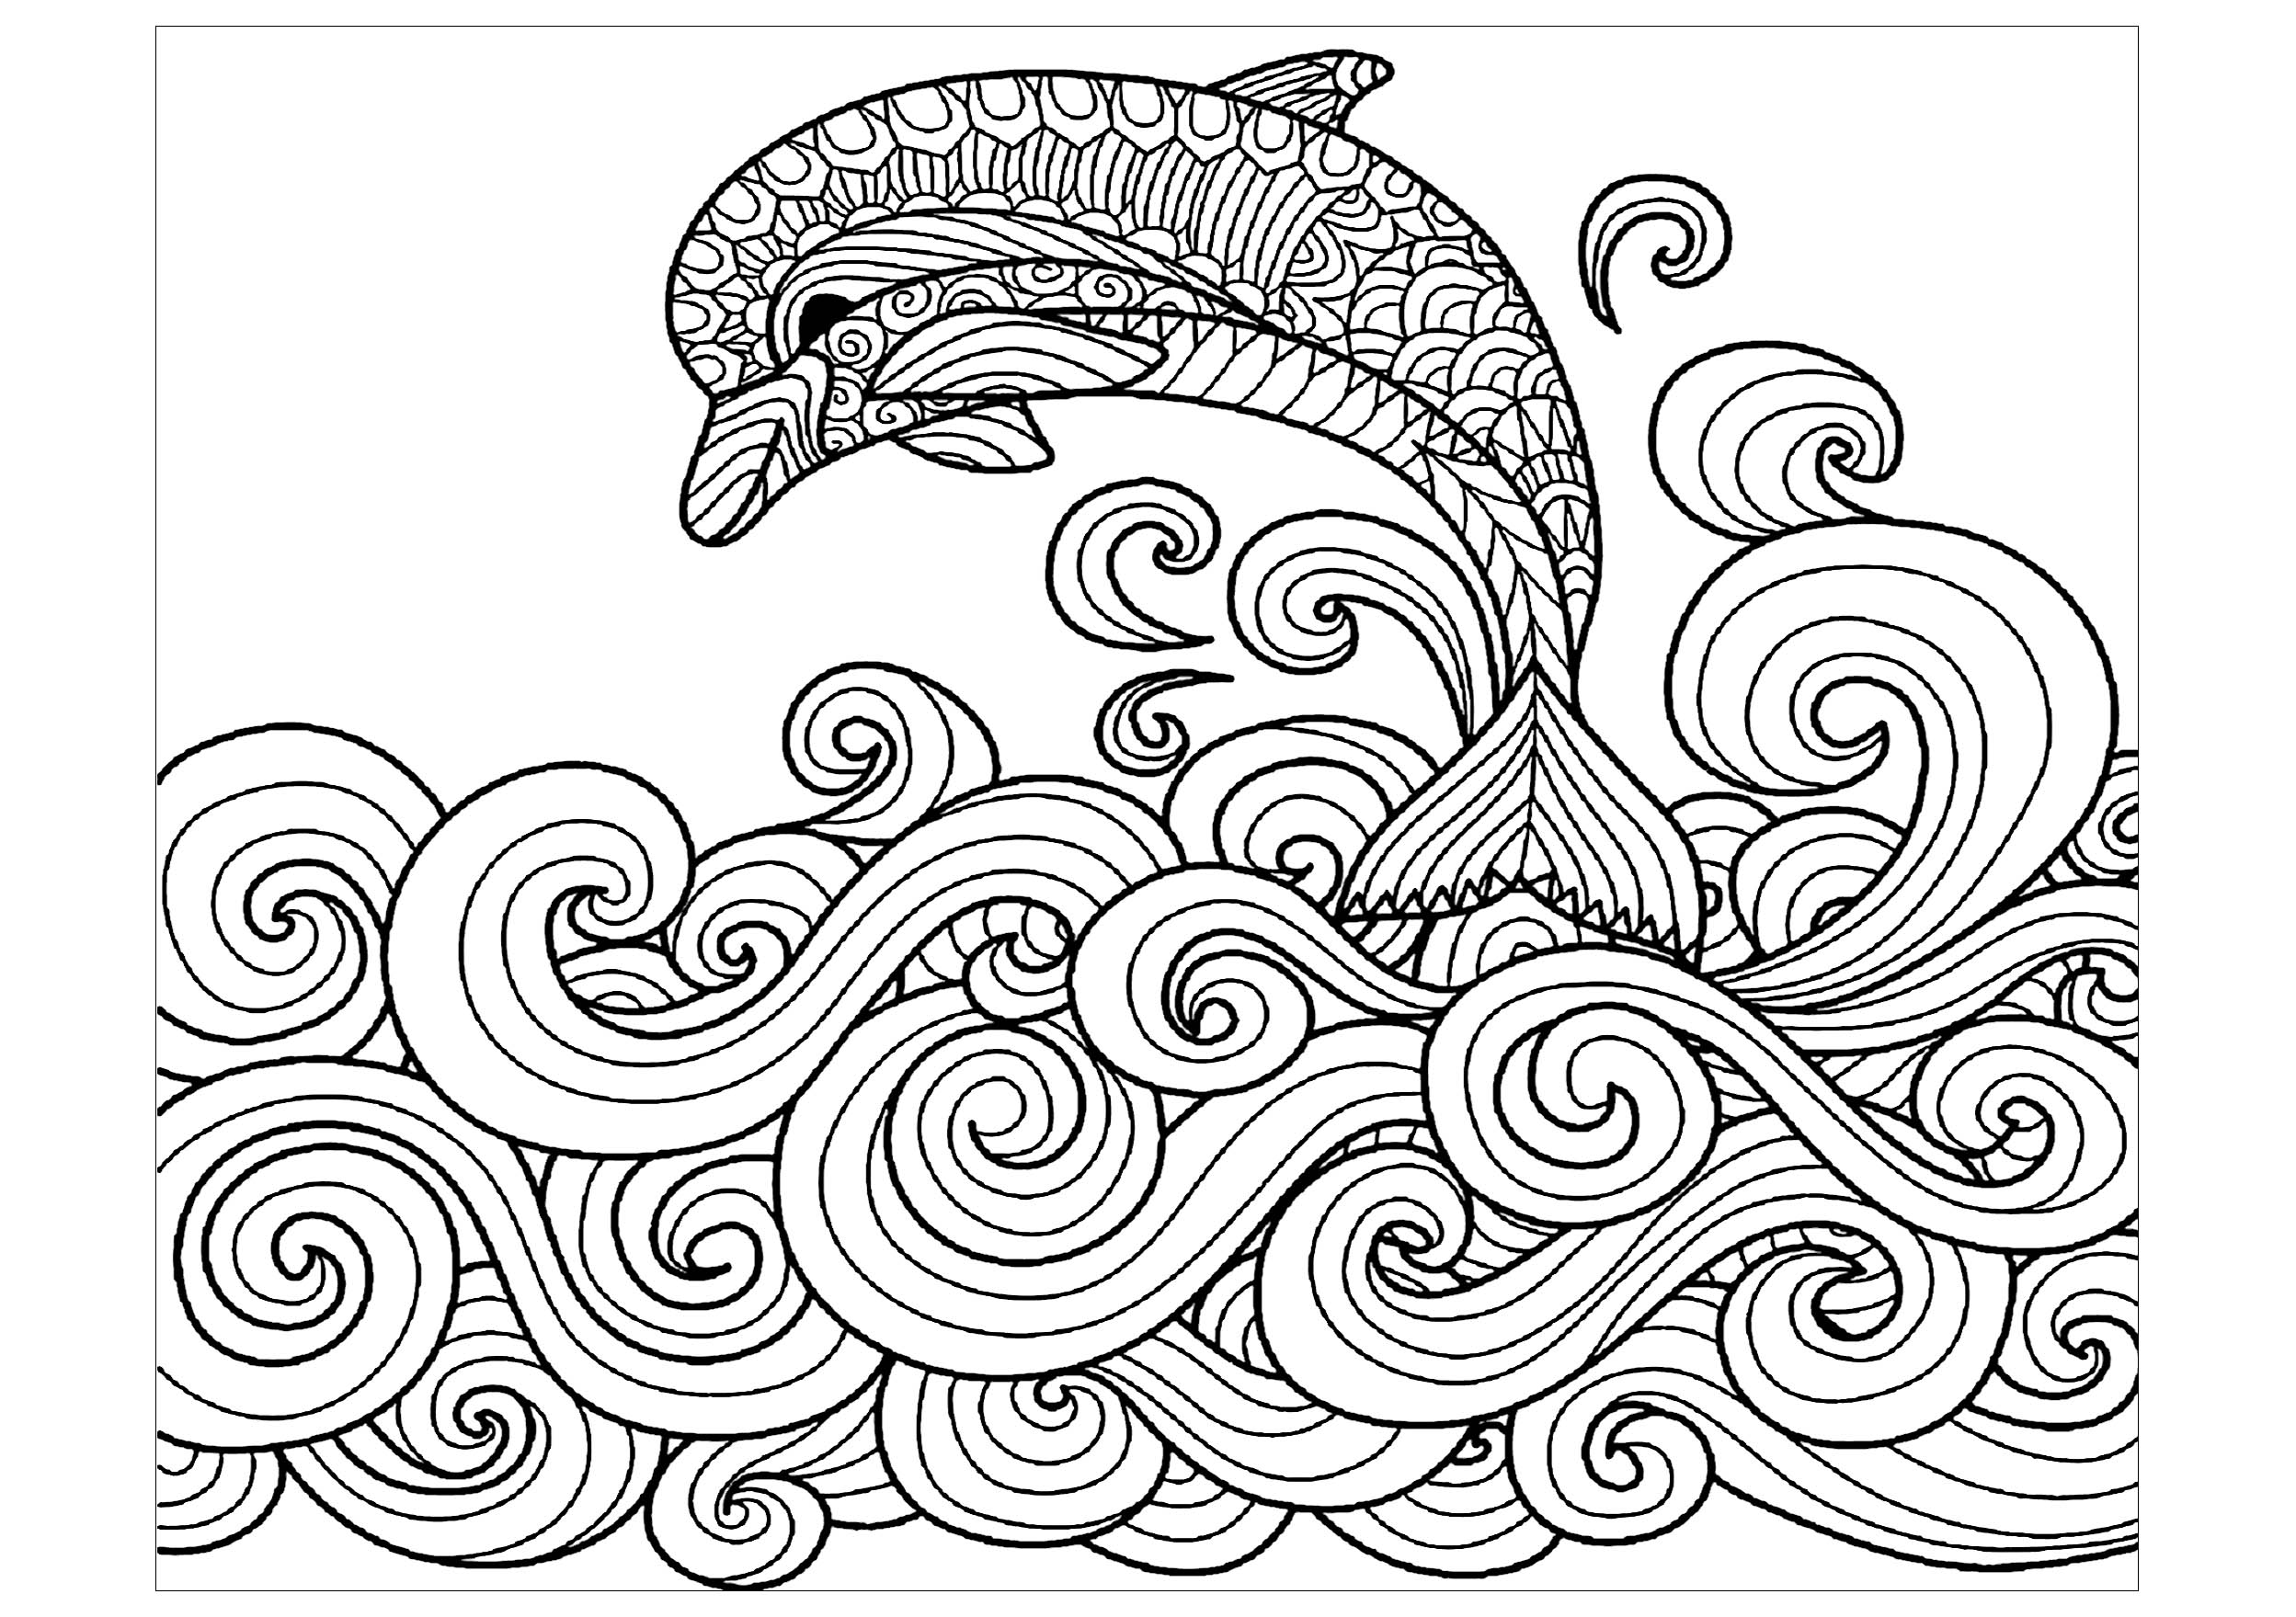 image relating to Dolphin Coloring Pages Printable identified as Dolphins - Coloring Web pages for Grown ups